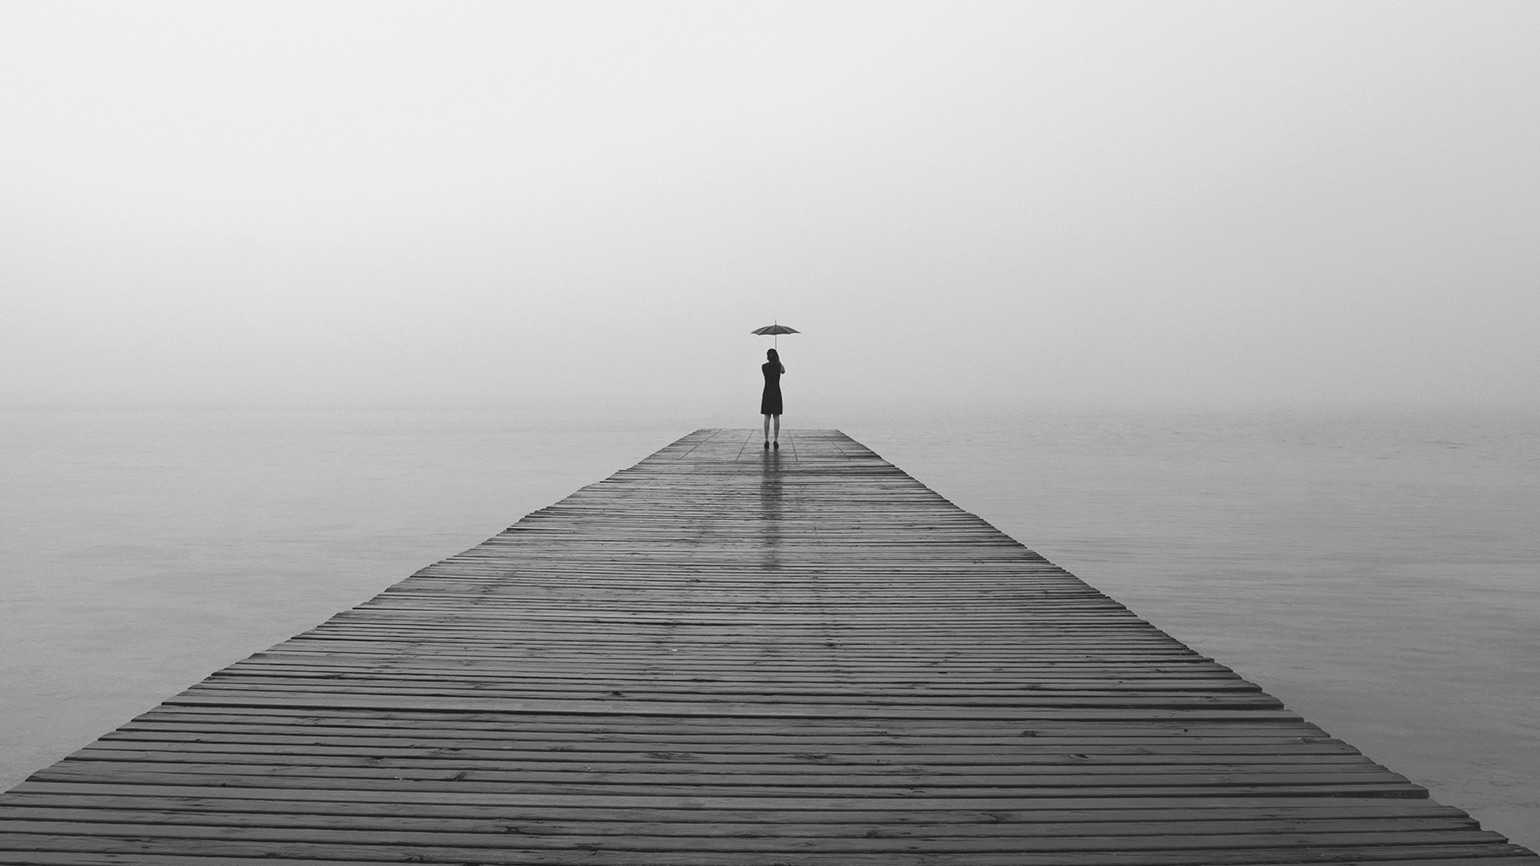 A woman stands at the end of a long, foggy pier, umbrella in hand